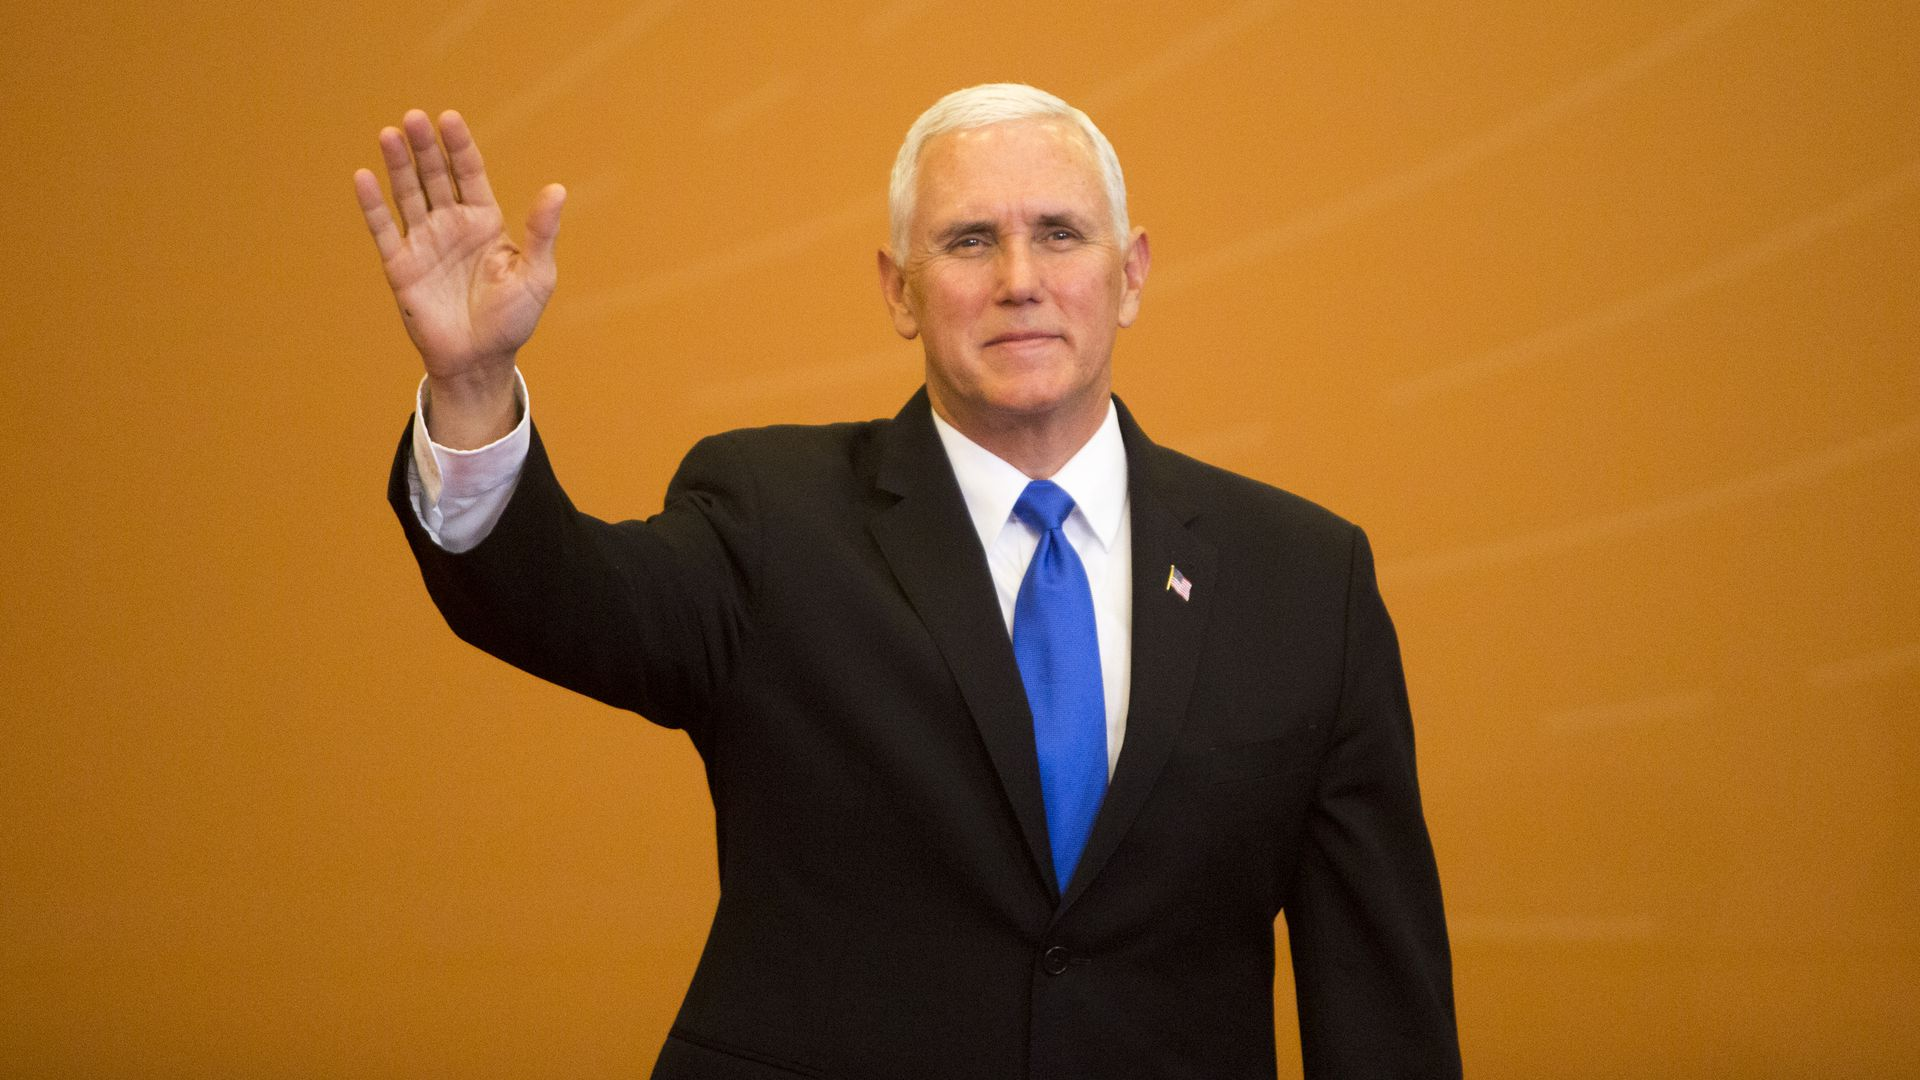 Mike Pence waving.